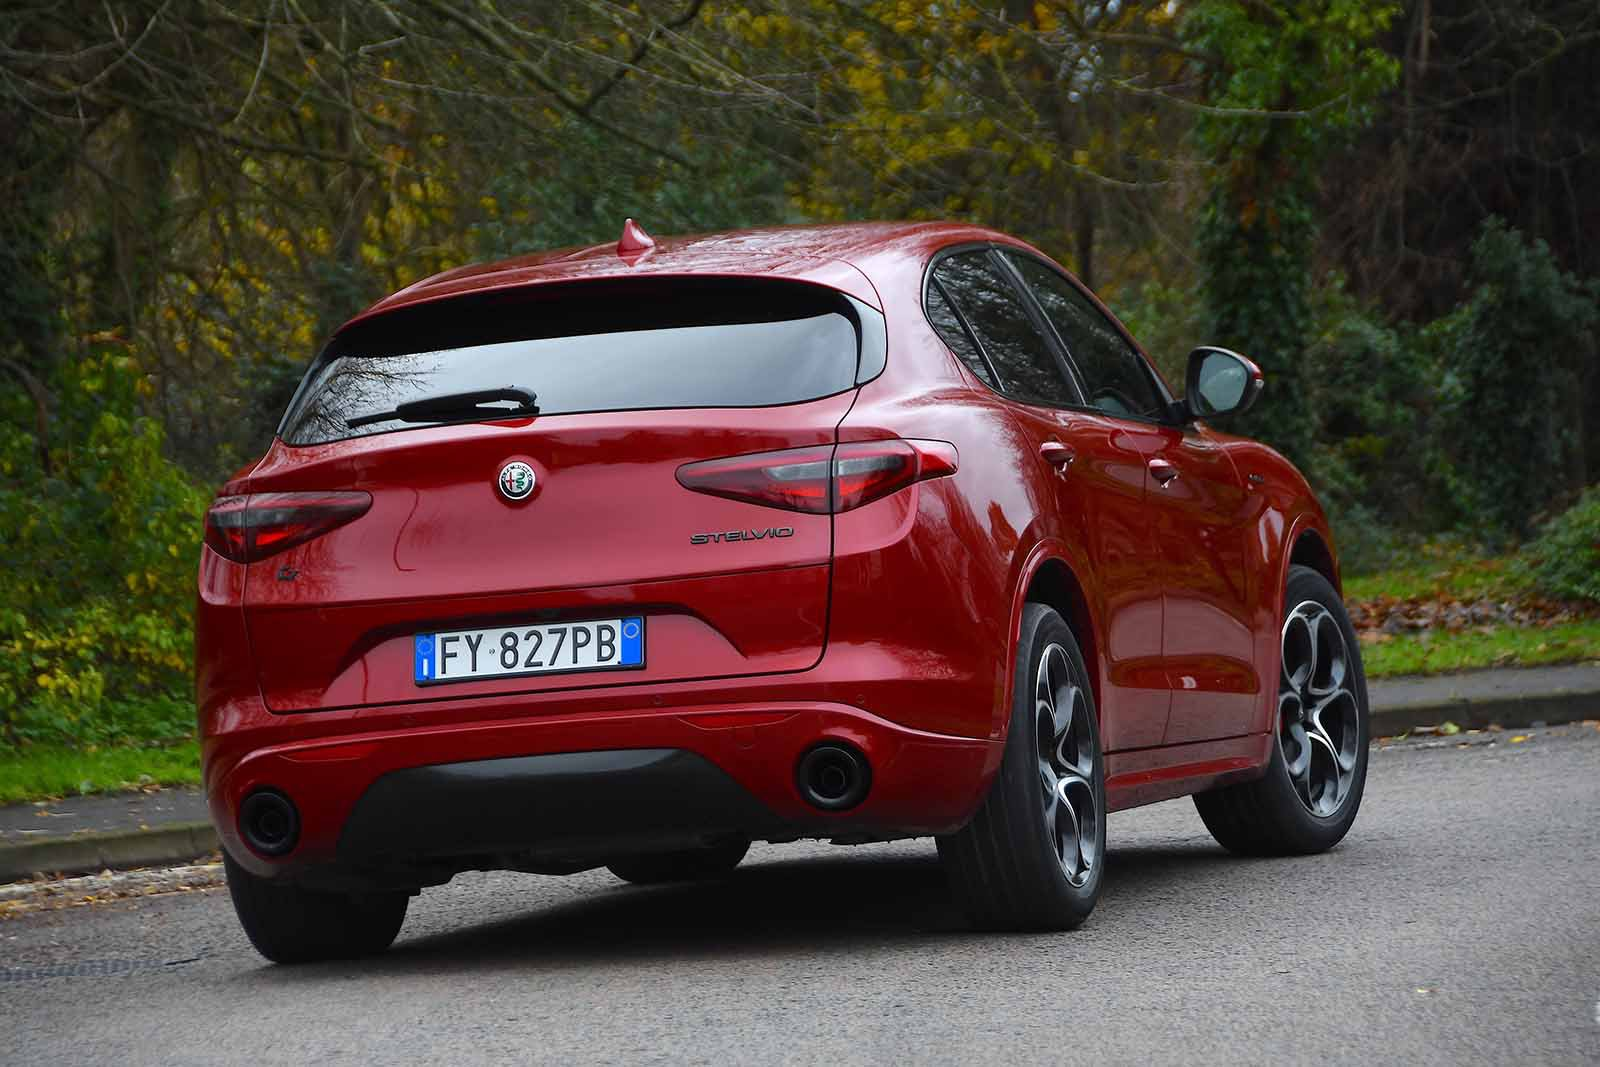 Alfa Romeo Stelvio 2019 rear right cornering (LHD)